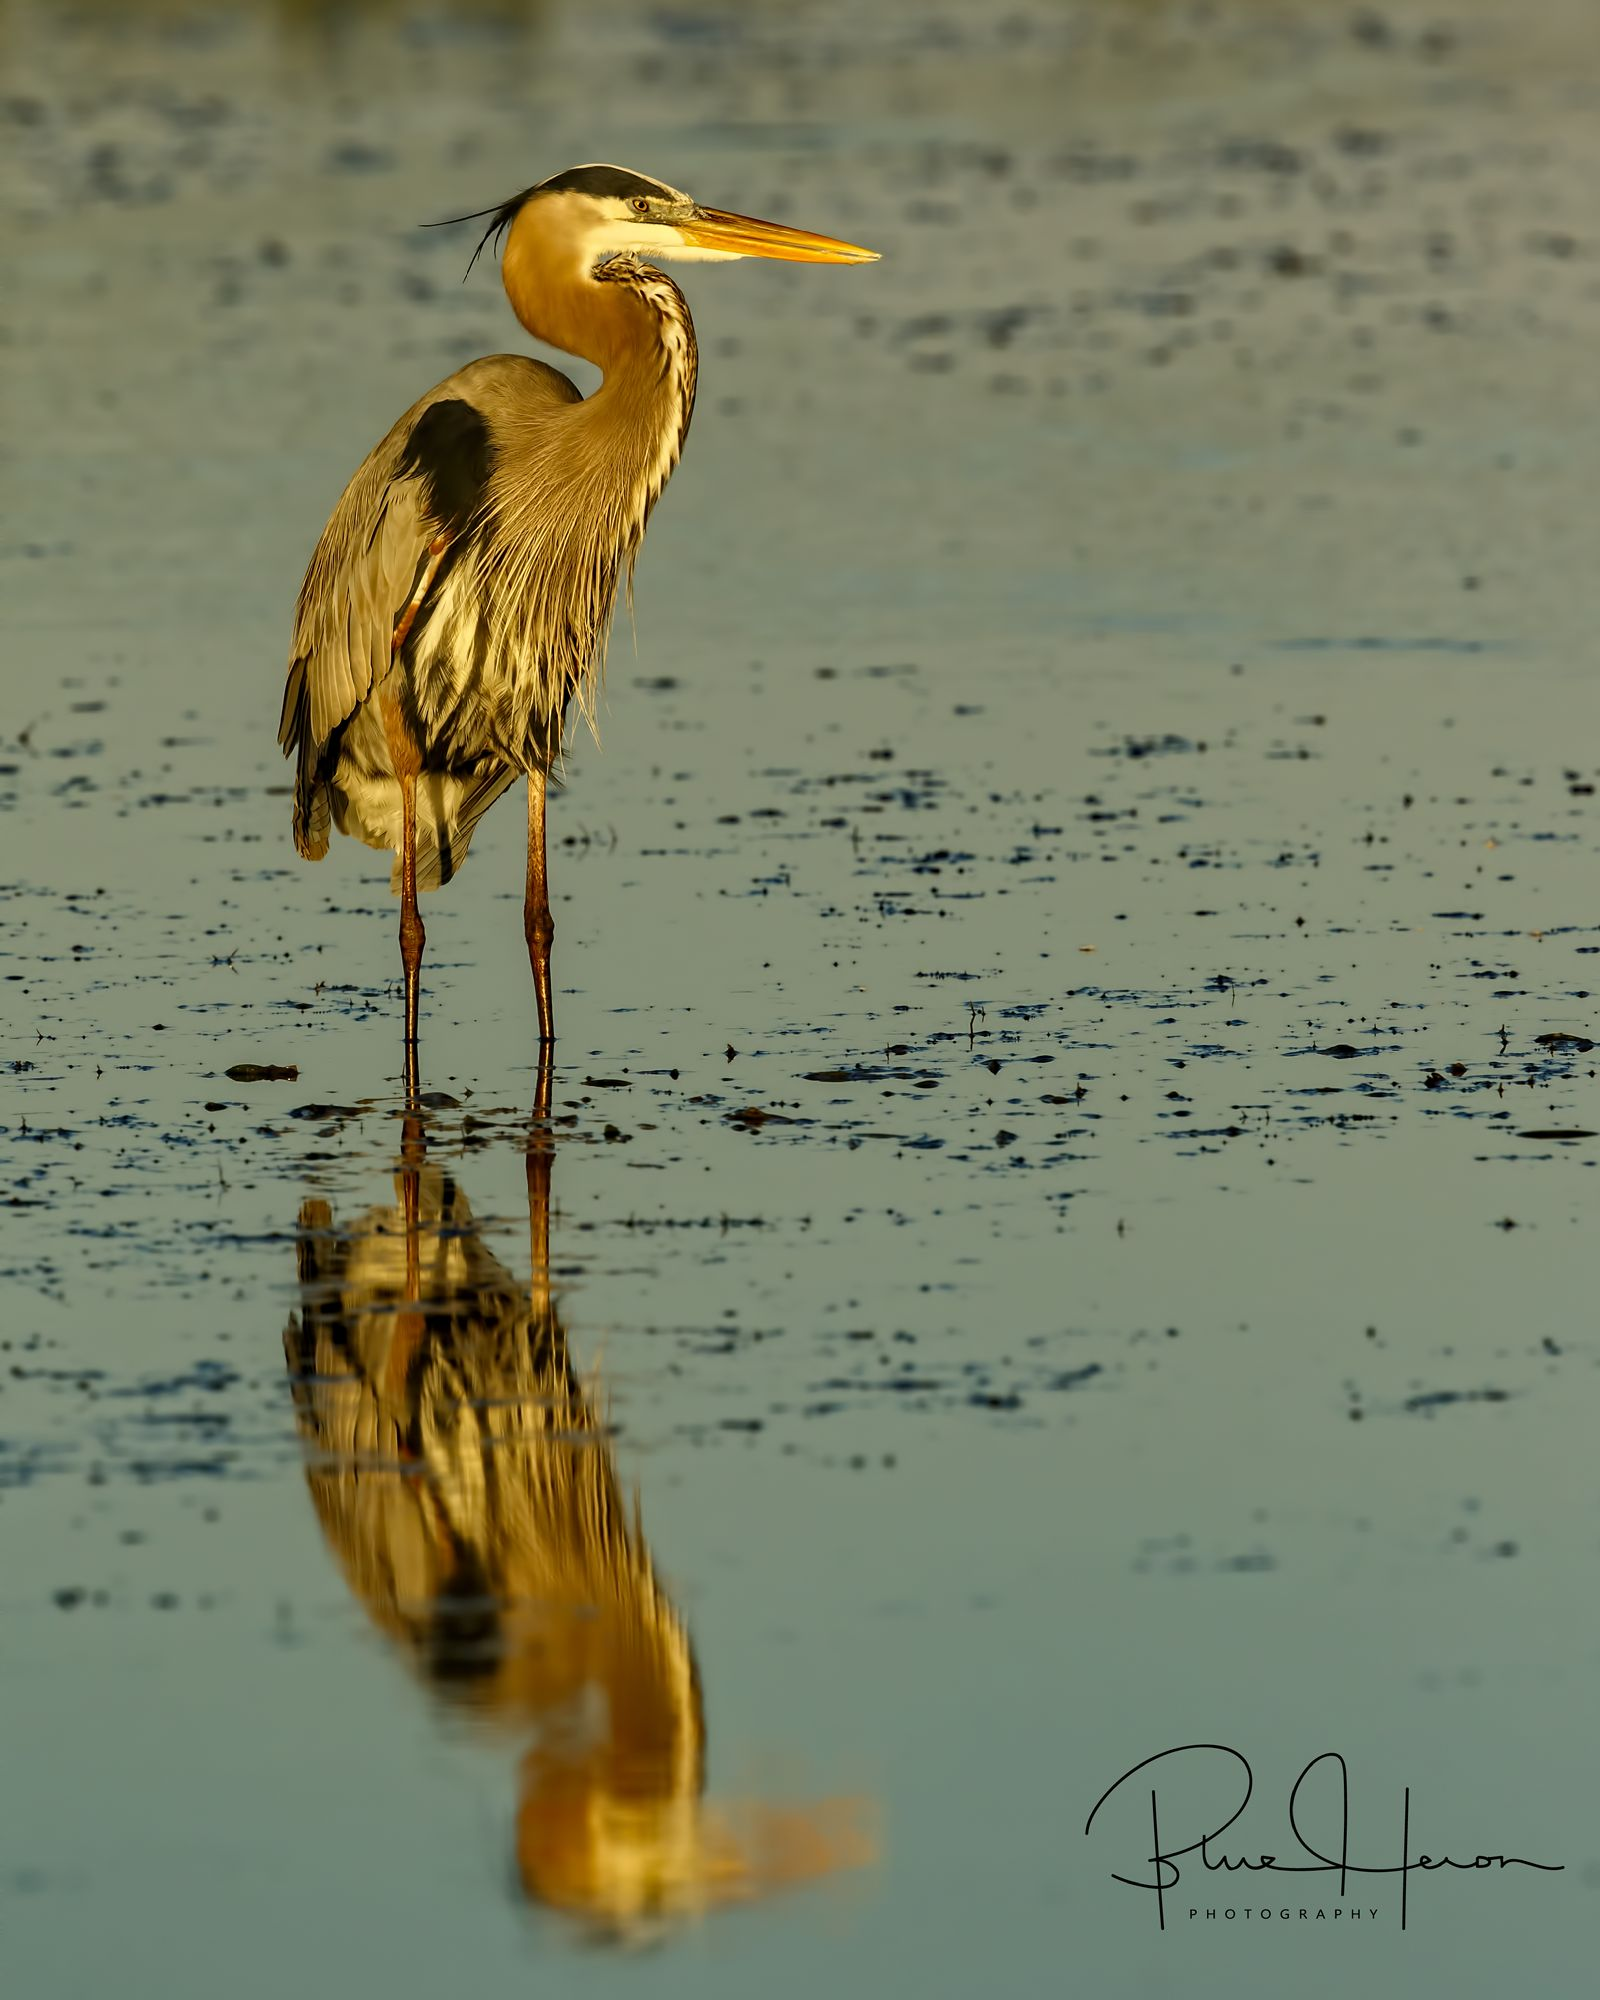 The tidal mud is not to pretty but sure makes catching fish easy for wading marsh birds like this Great Blue Heron